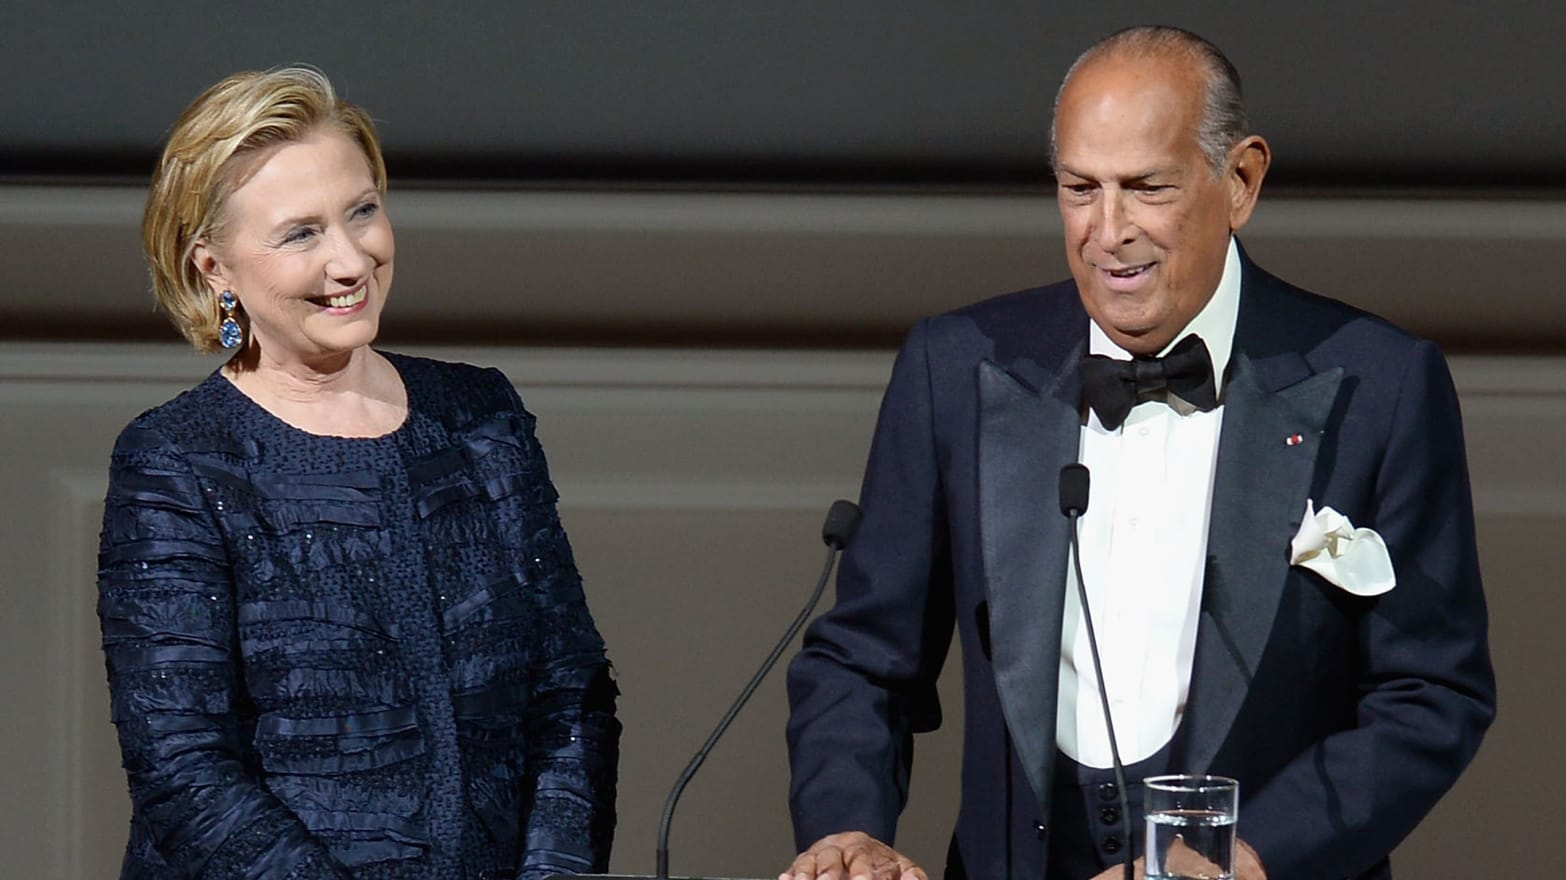 Cfda Awards Show Features Hillary Clinton Oscar De La Renta